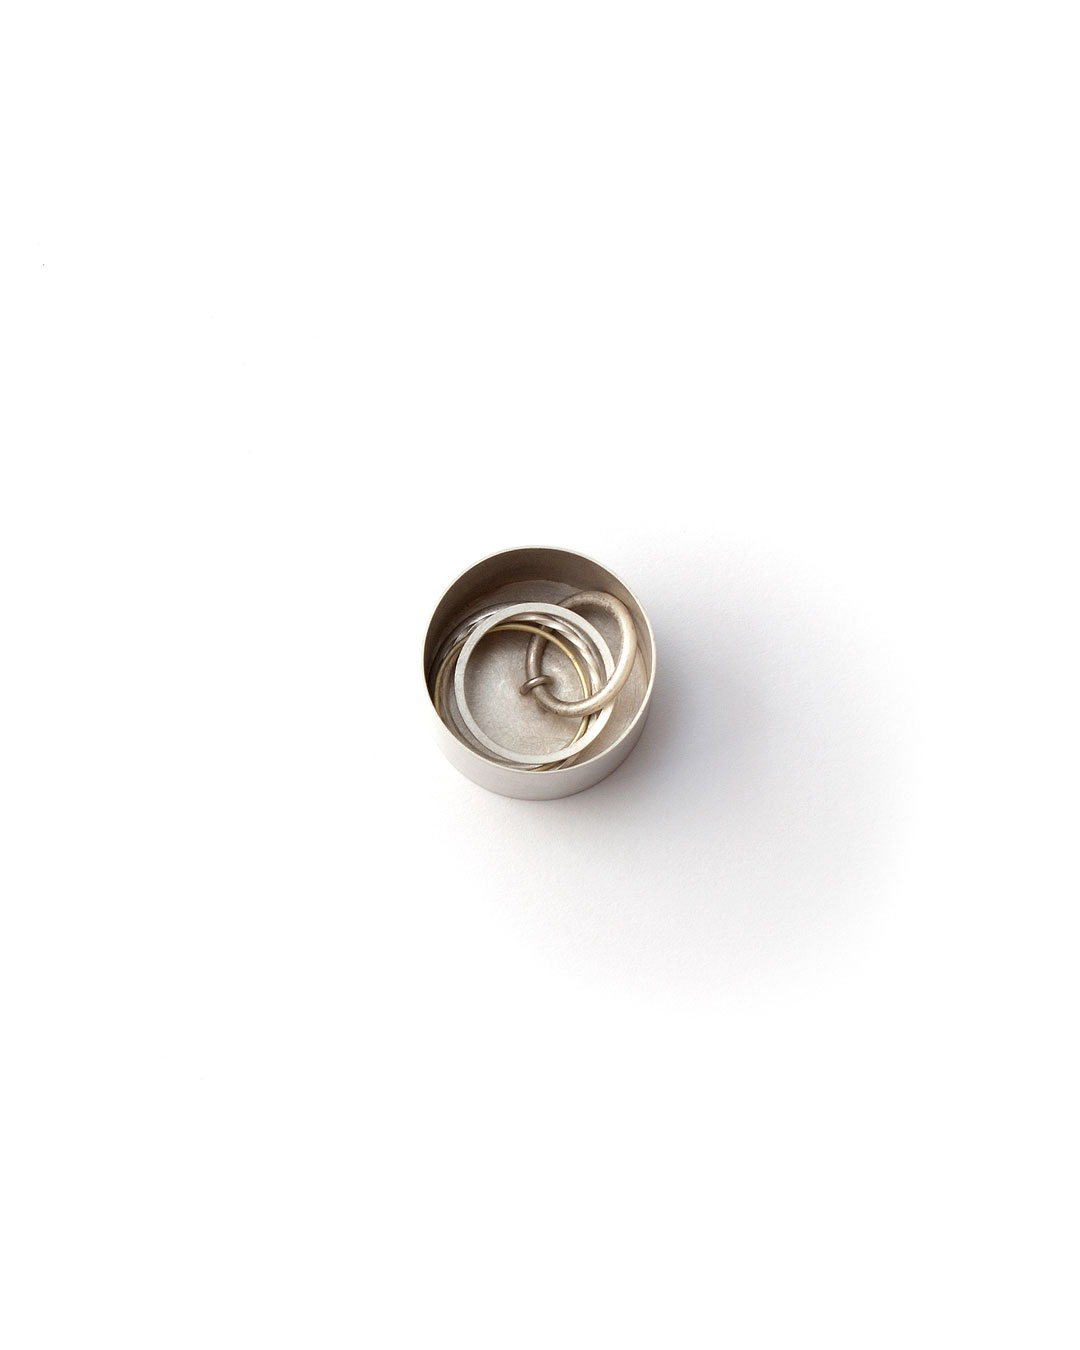 Junwon Jung, untitled (round, multiple rings), 2016, ring; silver, gold, 30 x 30 x 35 mm, €970